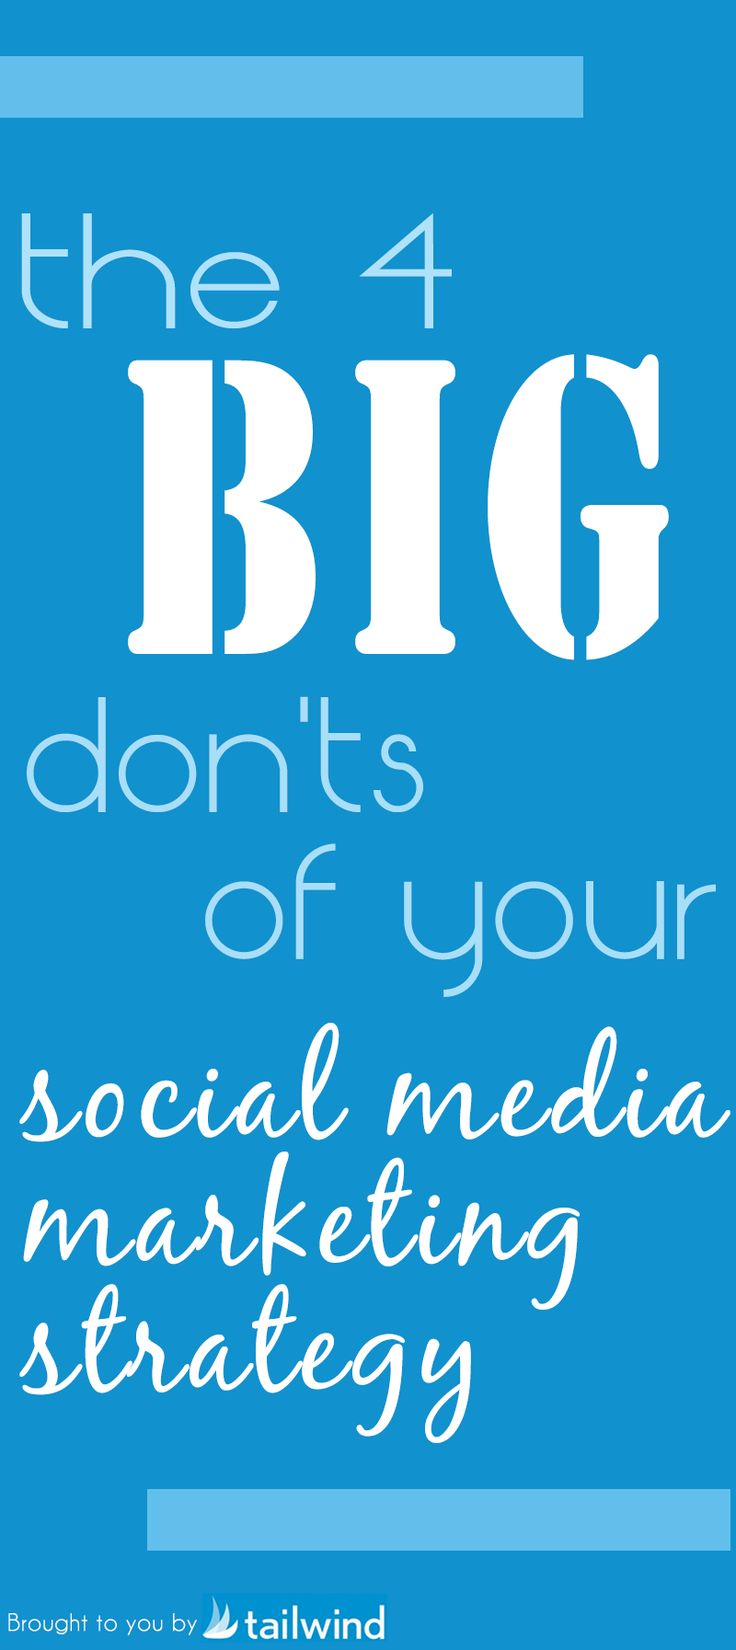 """Agreed! """"The Four Big Don'ts For Your Social Media Marketing Strategy from Tailwind"""""""